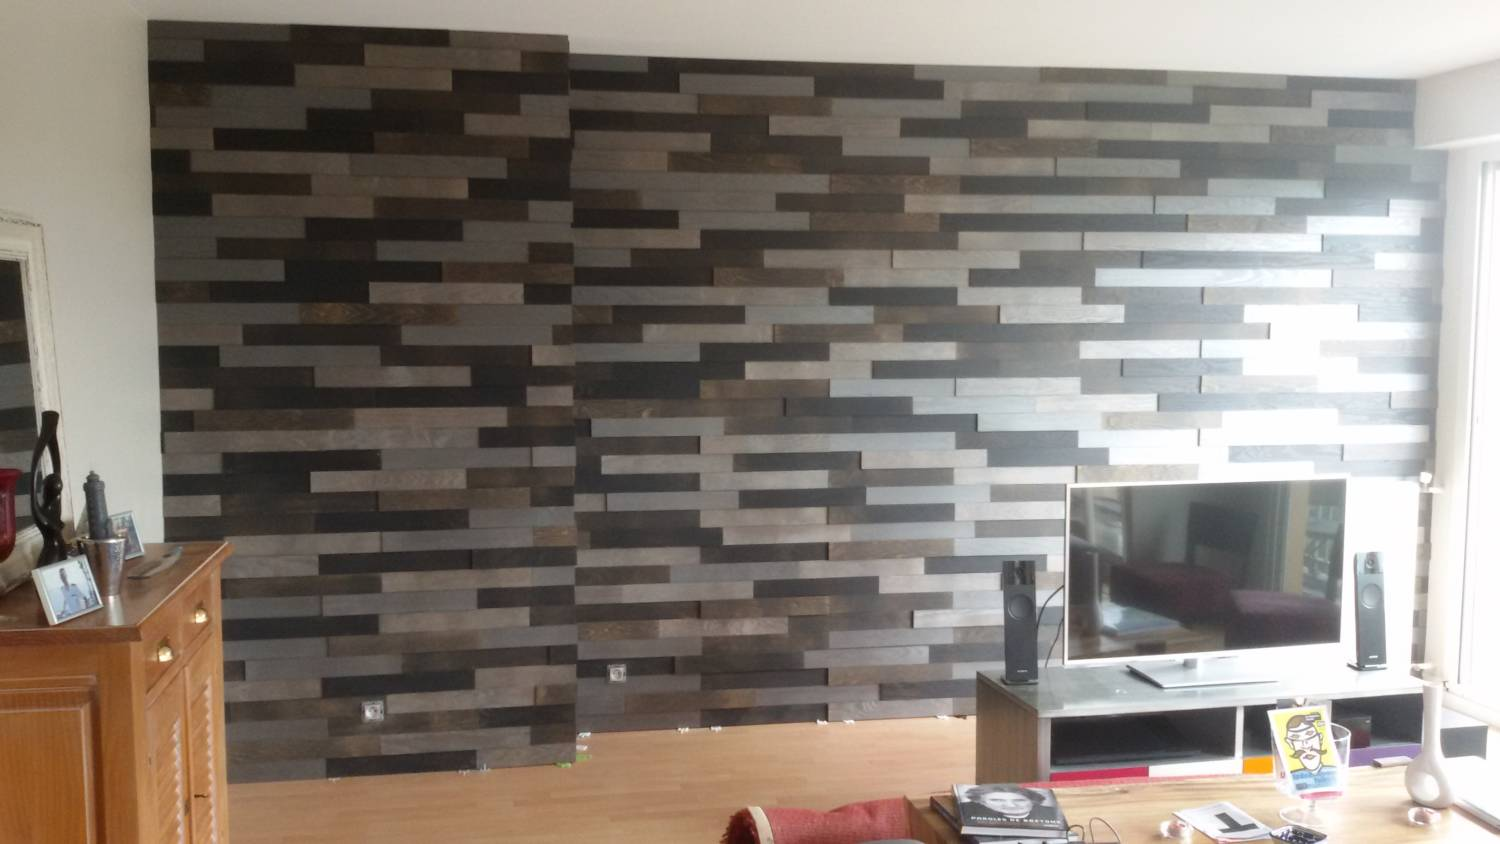 Habiller un mur int rieur nouveau produit parement for Decoration mur interieur